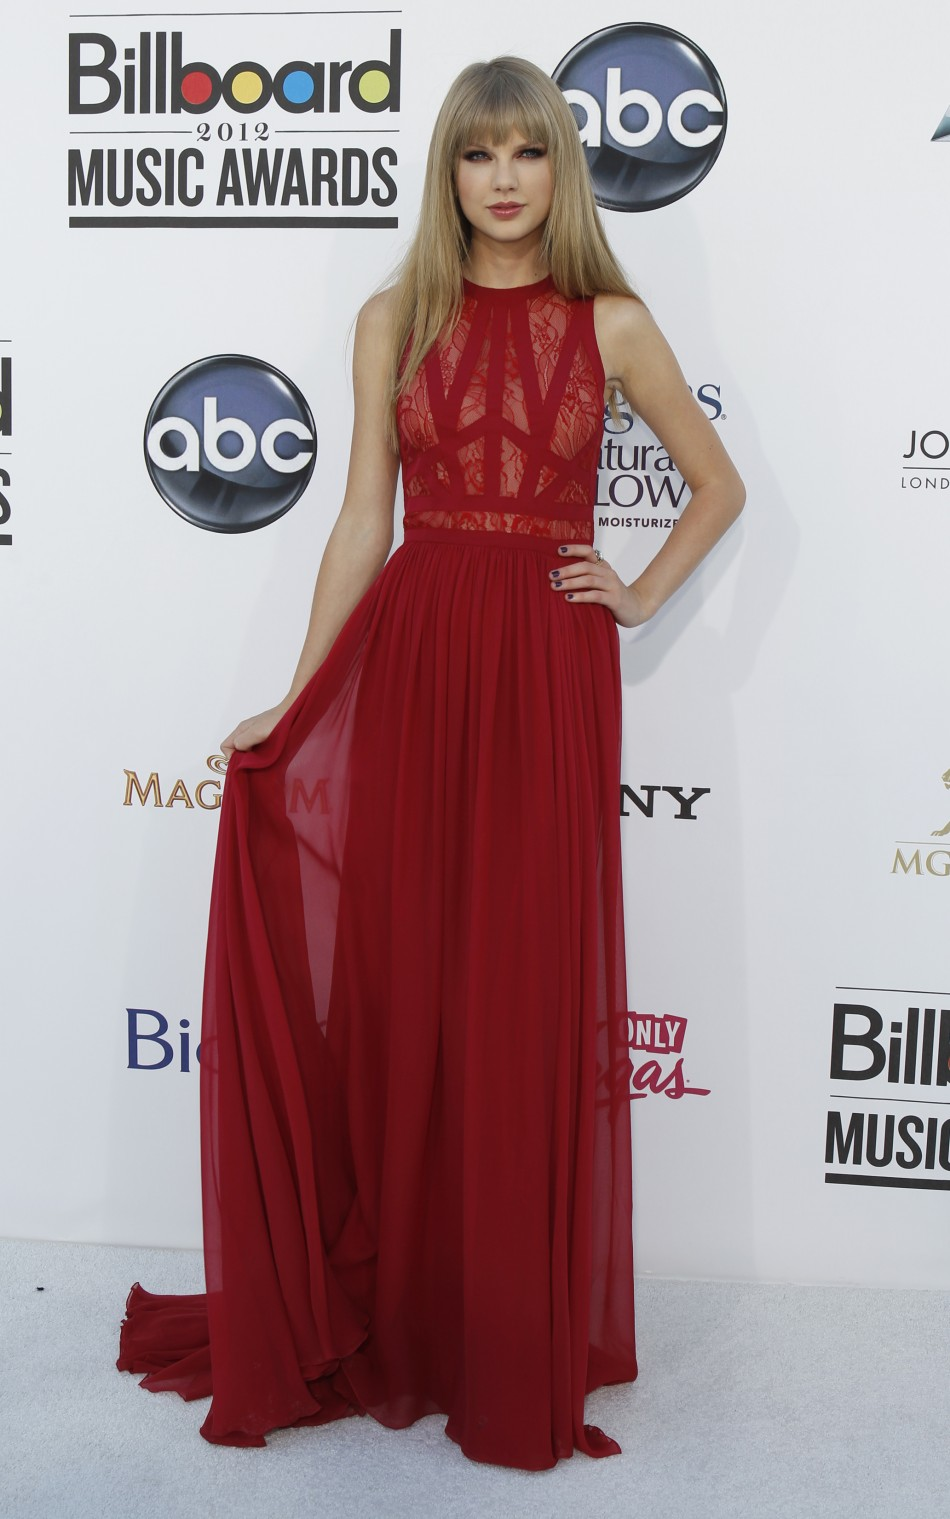 Singer Taylor Swift arrives at the 2012 Billboard Music Awards in Las Vegas